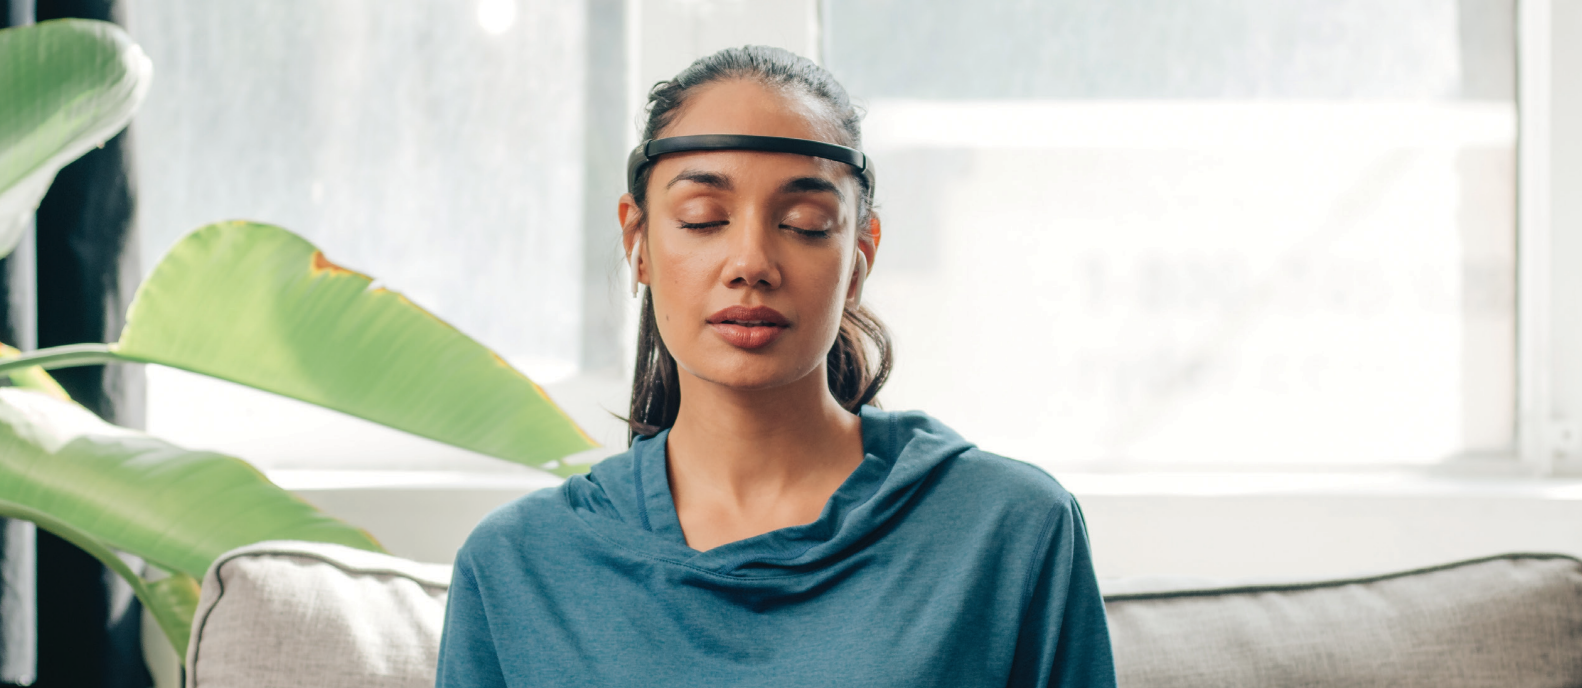 Muse: Technology Enhanced Meditation with EEG technology